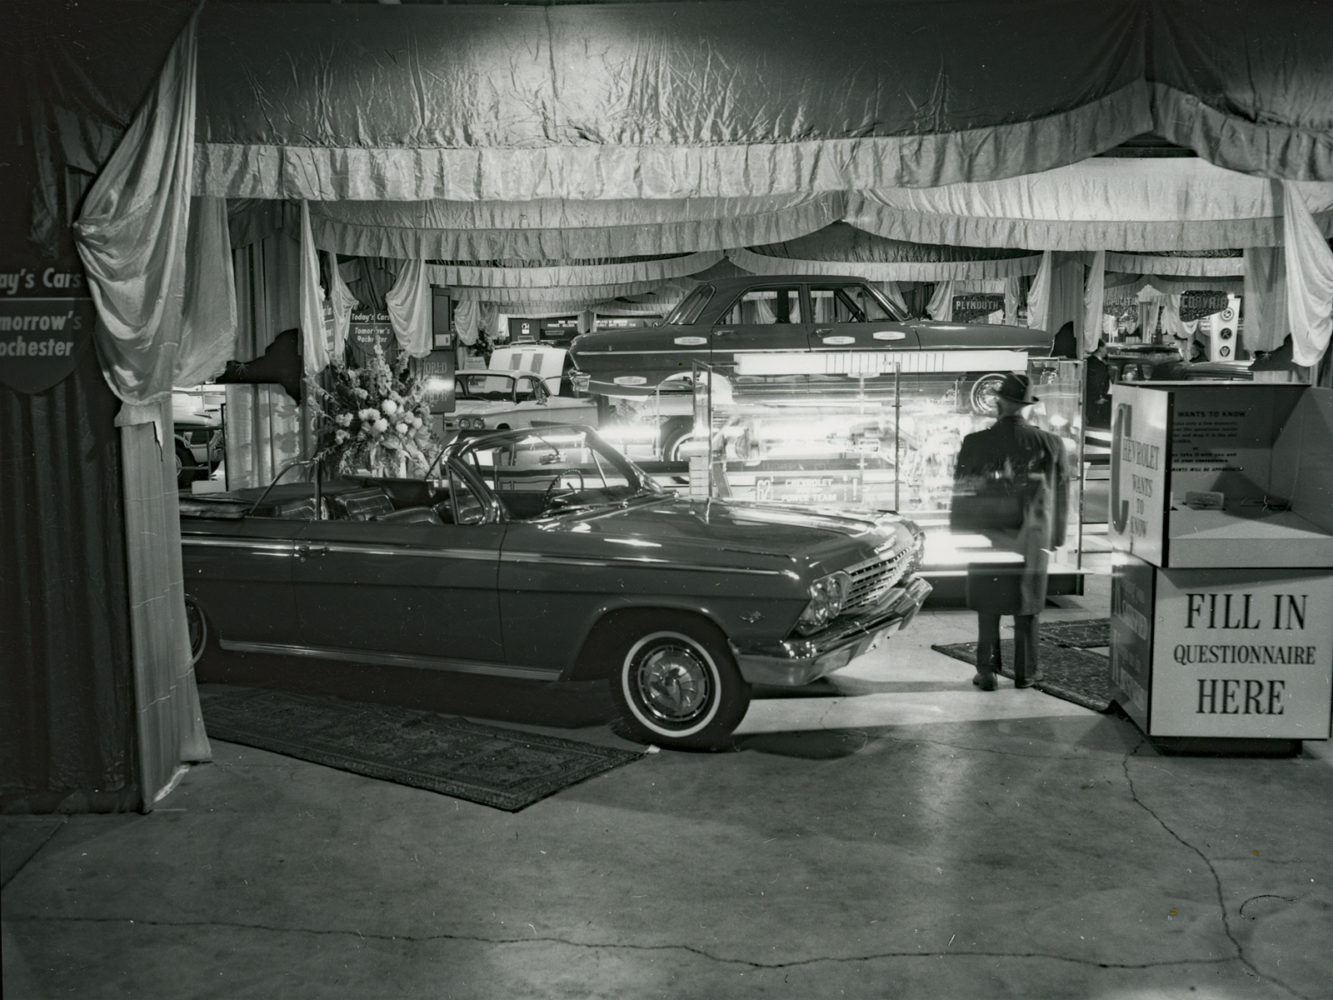 1962 Auto Show at War Memorial in downtown Rochester – photo from City of Rochester